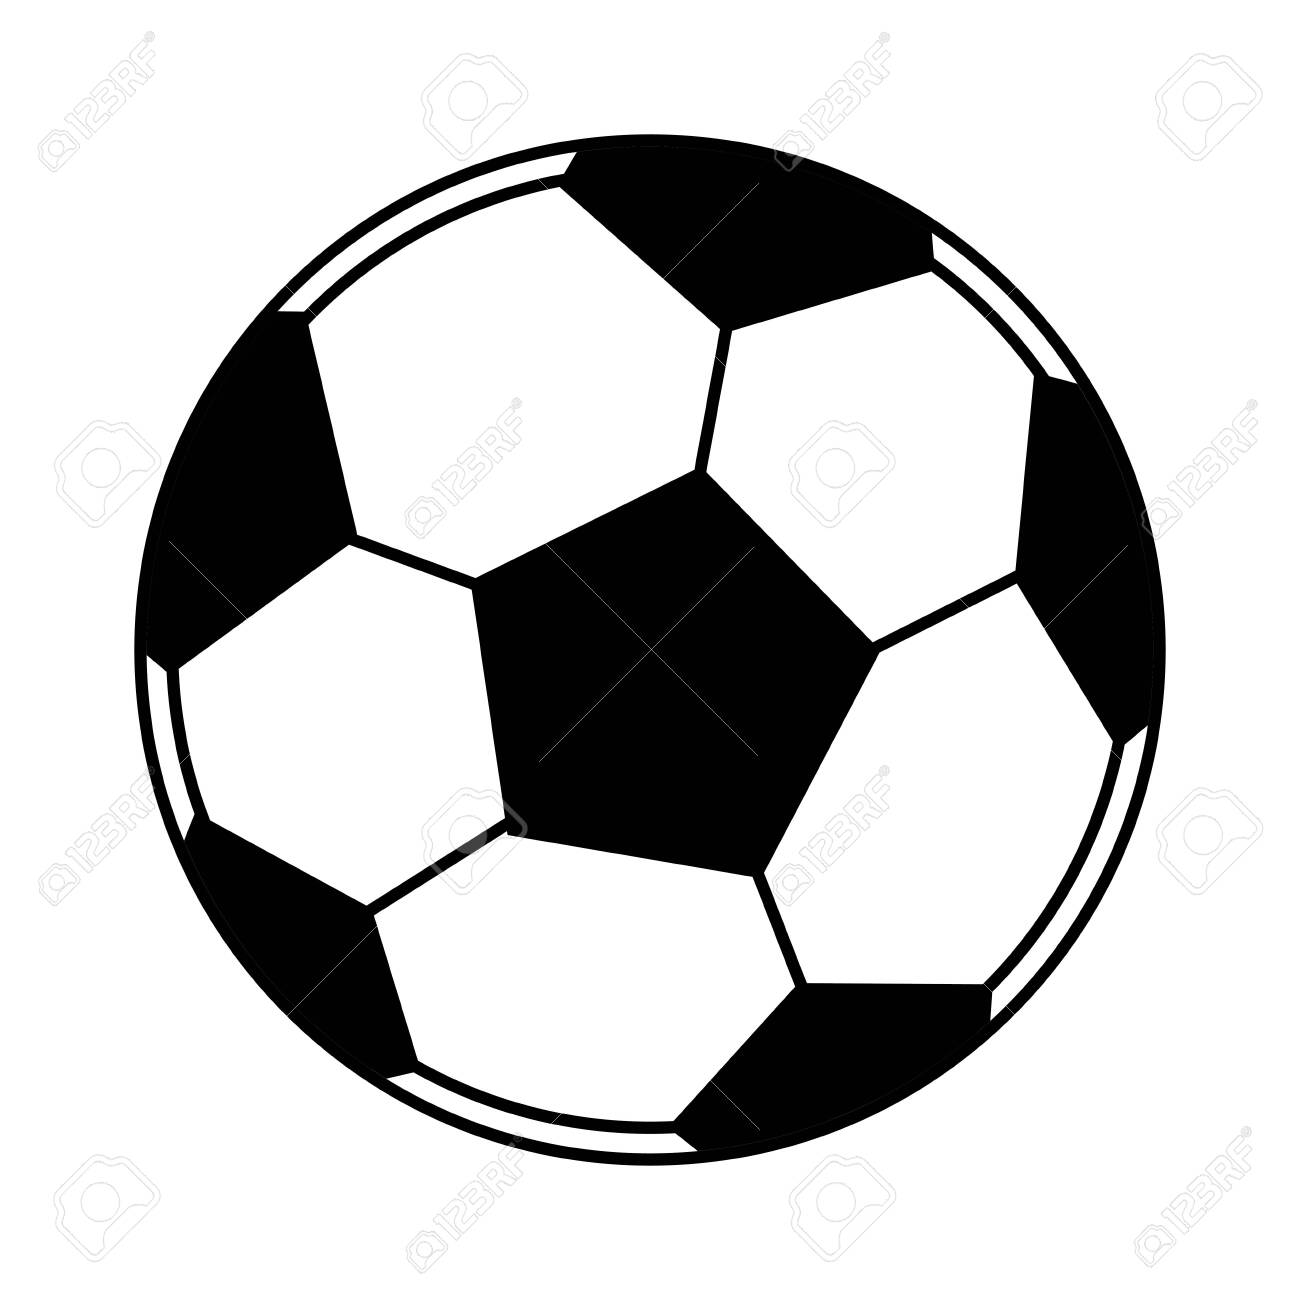 soccer ball icon cartoon isolated black and white vector illustration..  royalty free cliparts, vectors, and stock illustration. image 128999243.  123rf